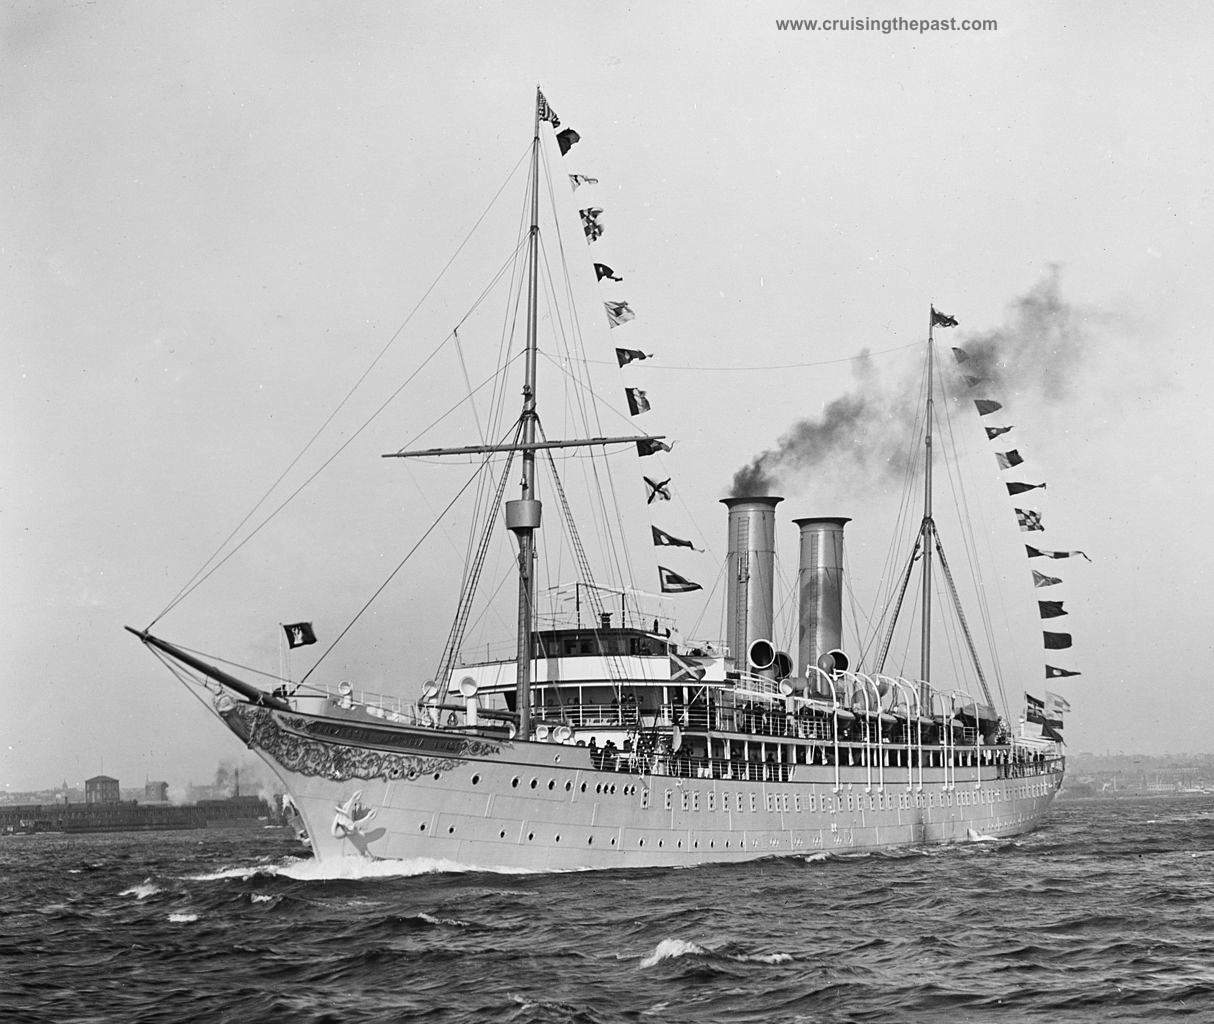 Cruise And Ocean Liner History The Golden Age Of Ocean Liners Cruising The Past